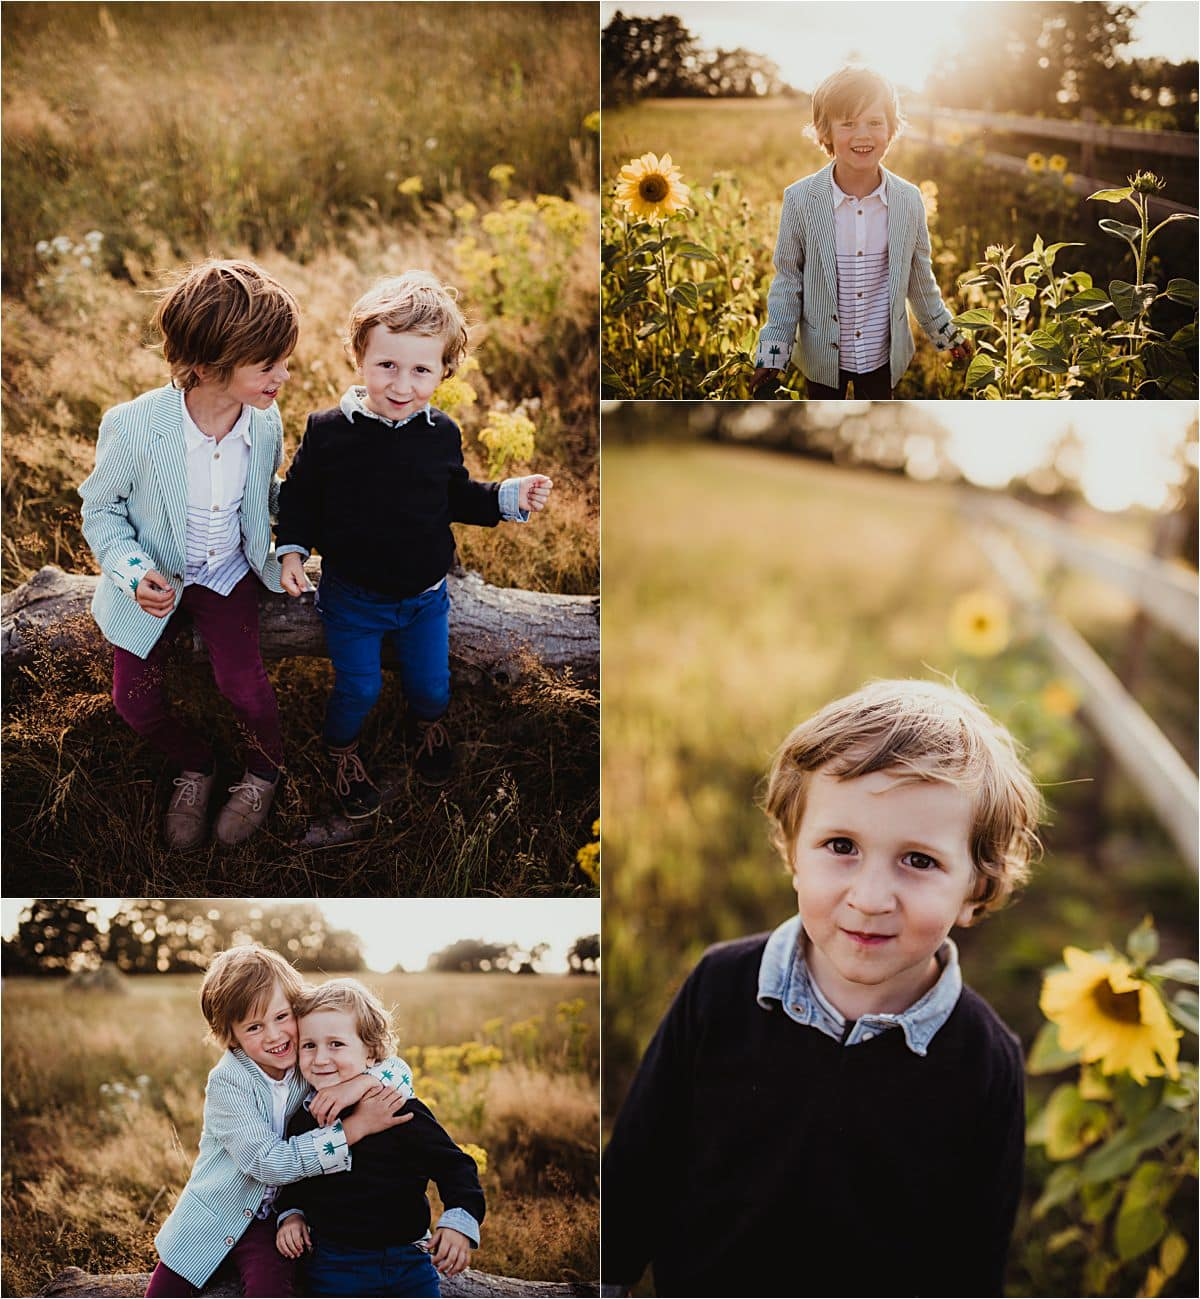 Sunset Field Family Session Brothers in Sunflower Field